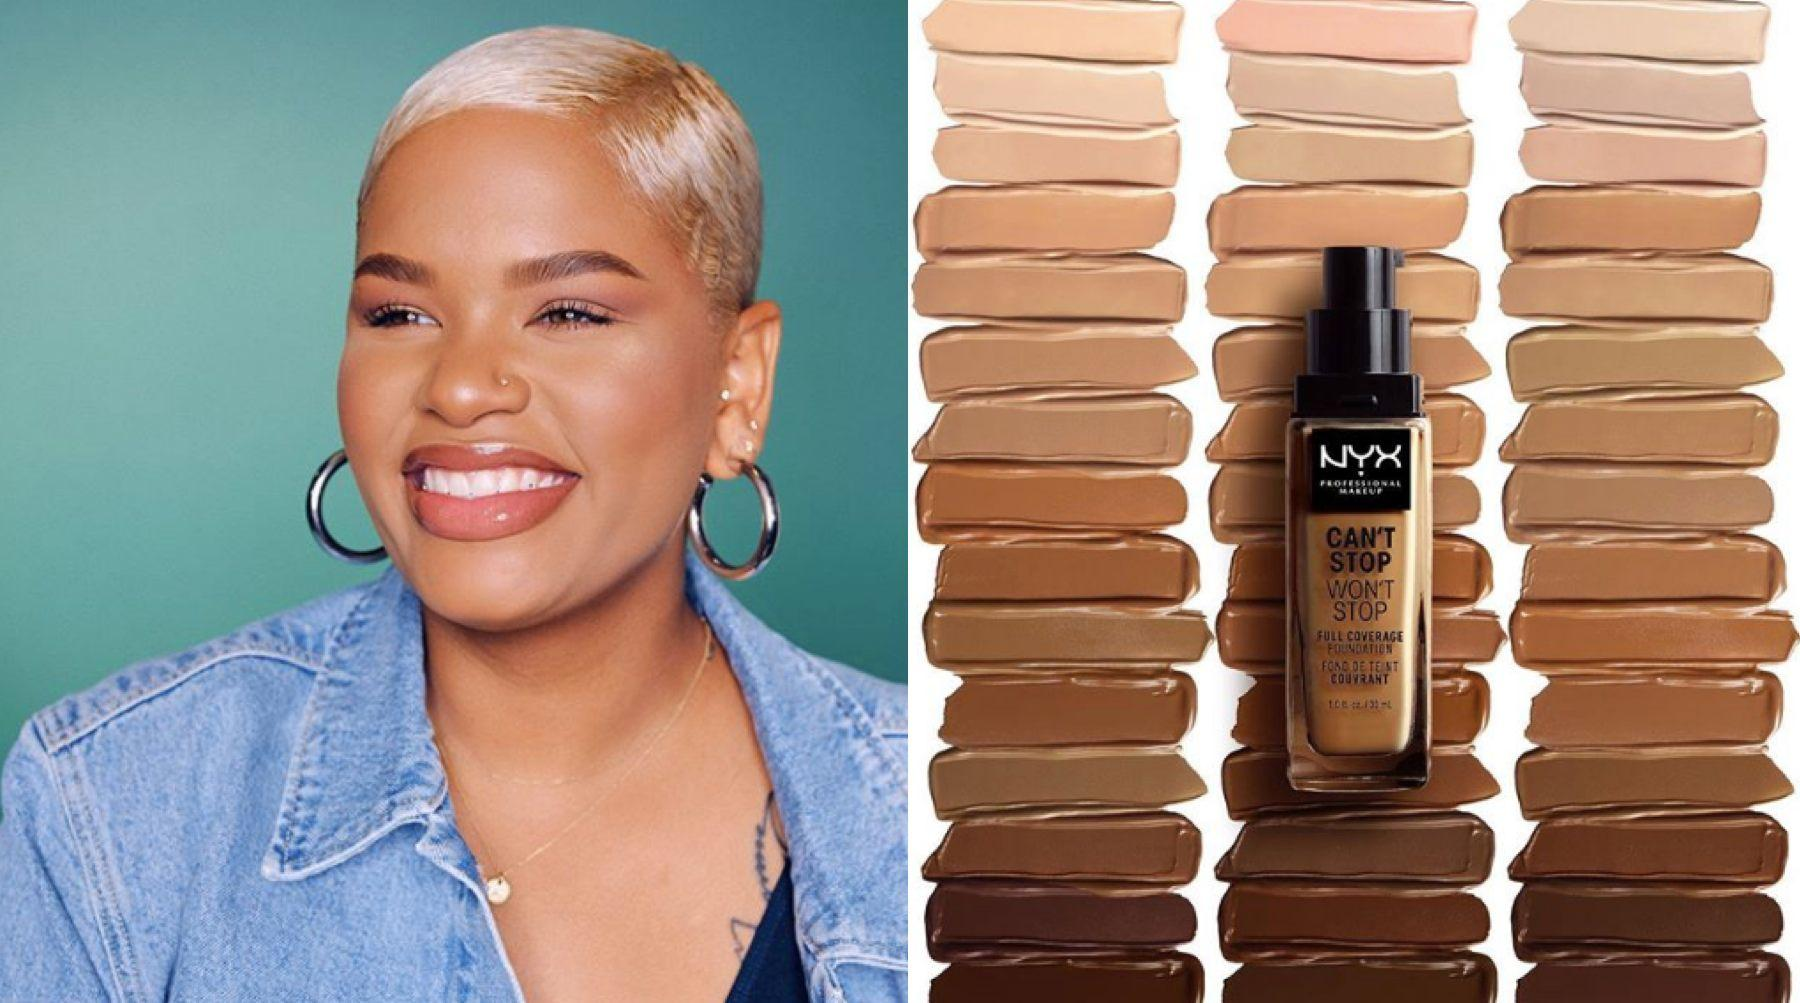 alissa_ashley_45_shades-1531401493999-1531401496254.jpg